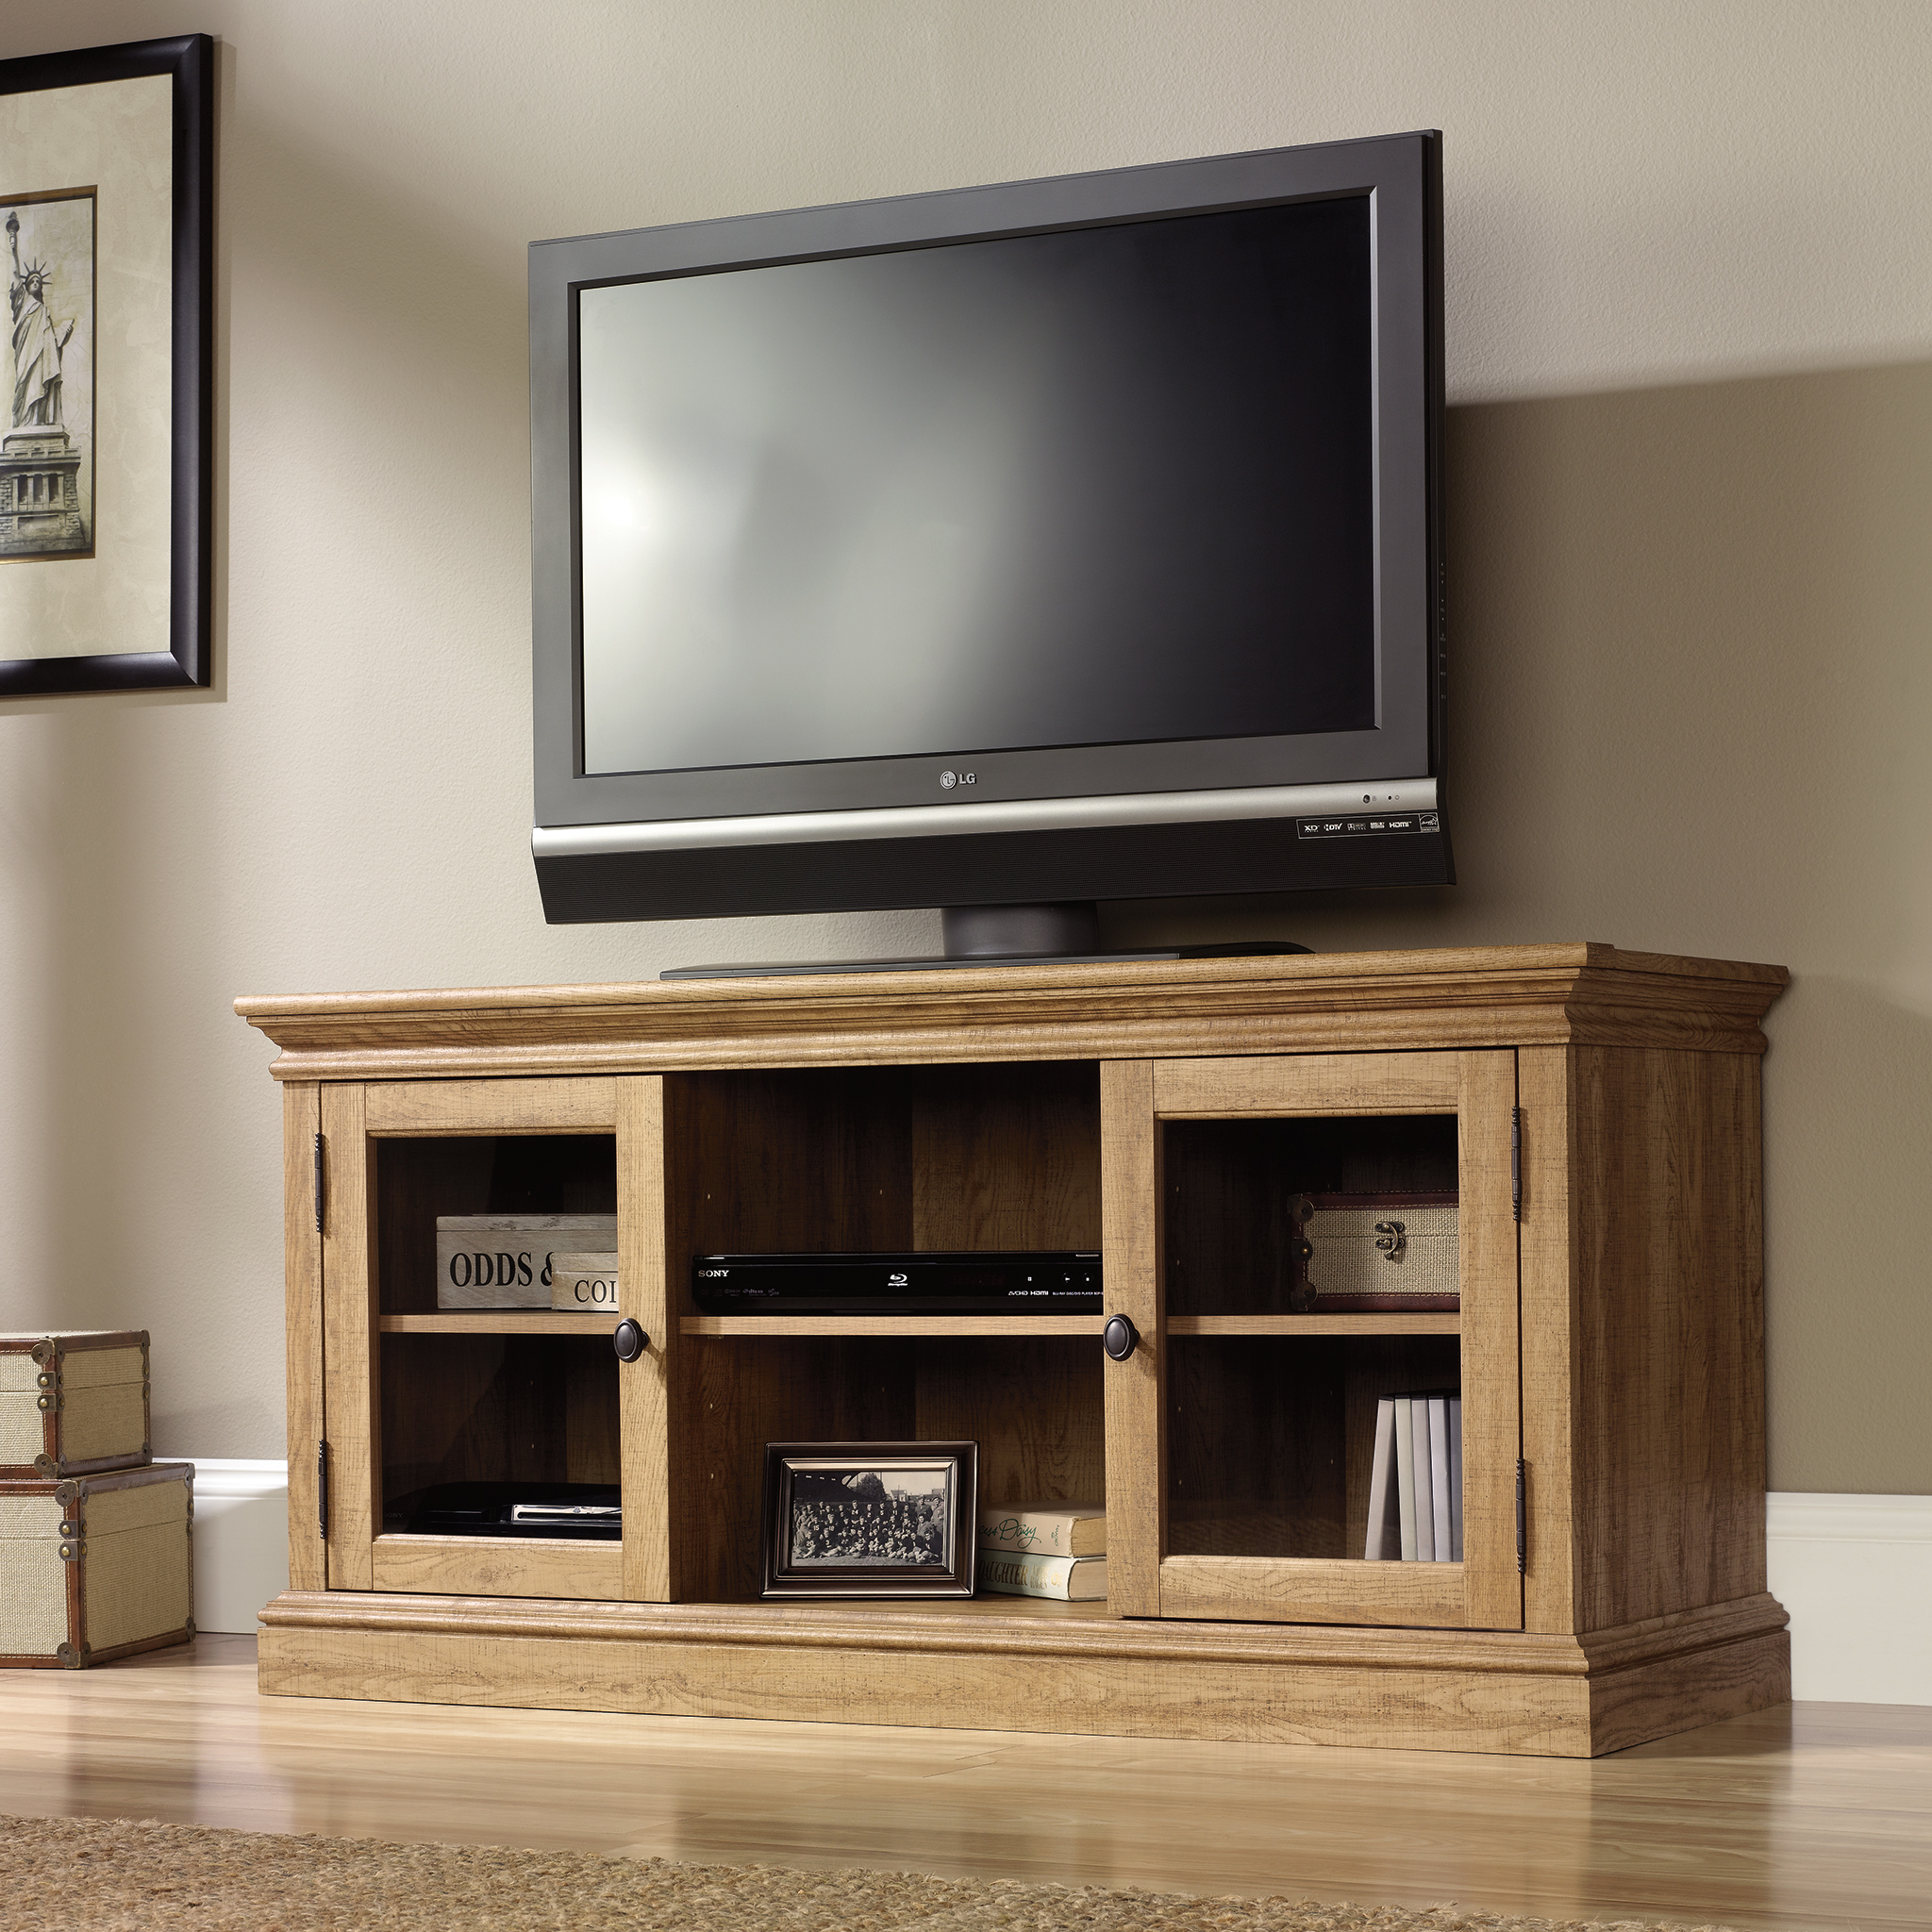 Charmant Sauder Barrister Lane TV Stand ...